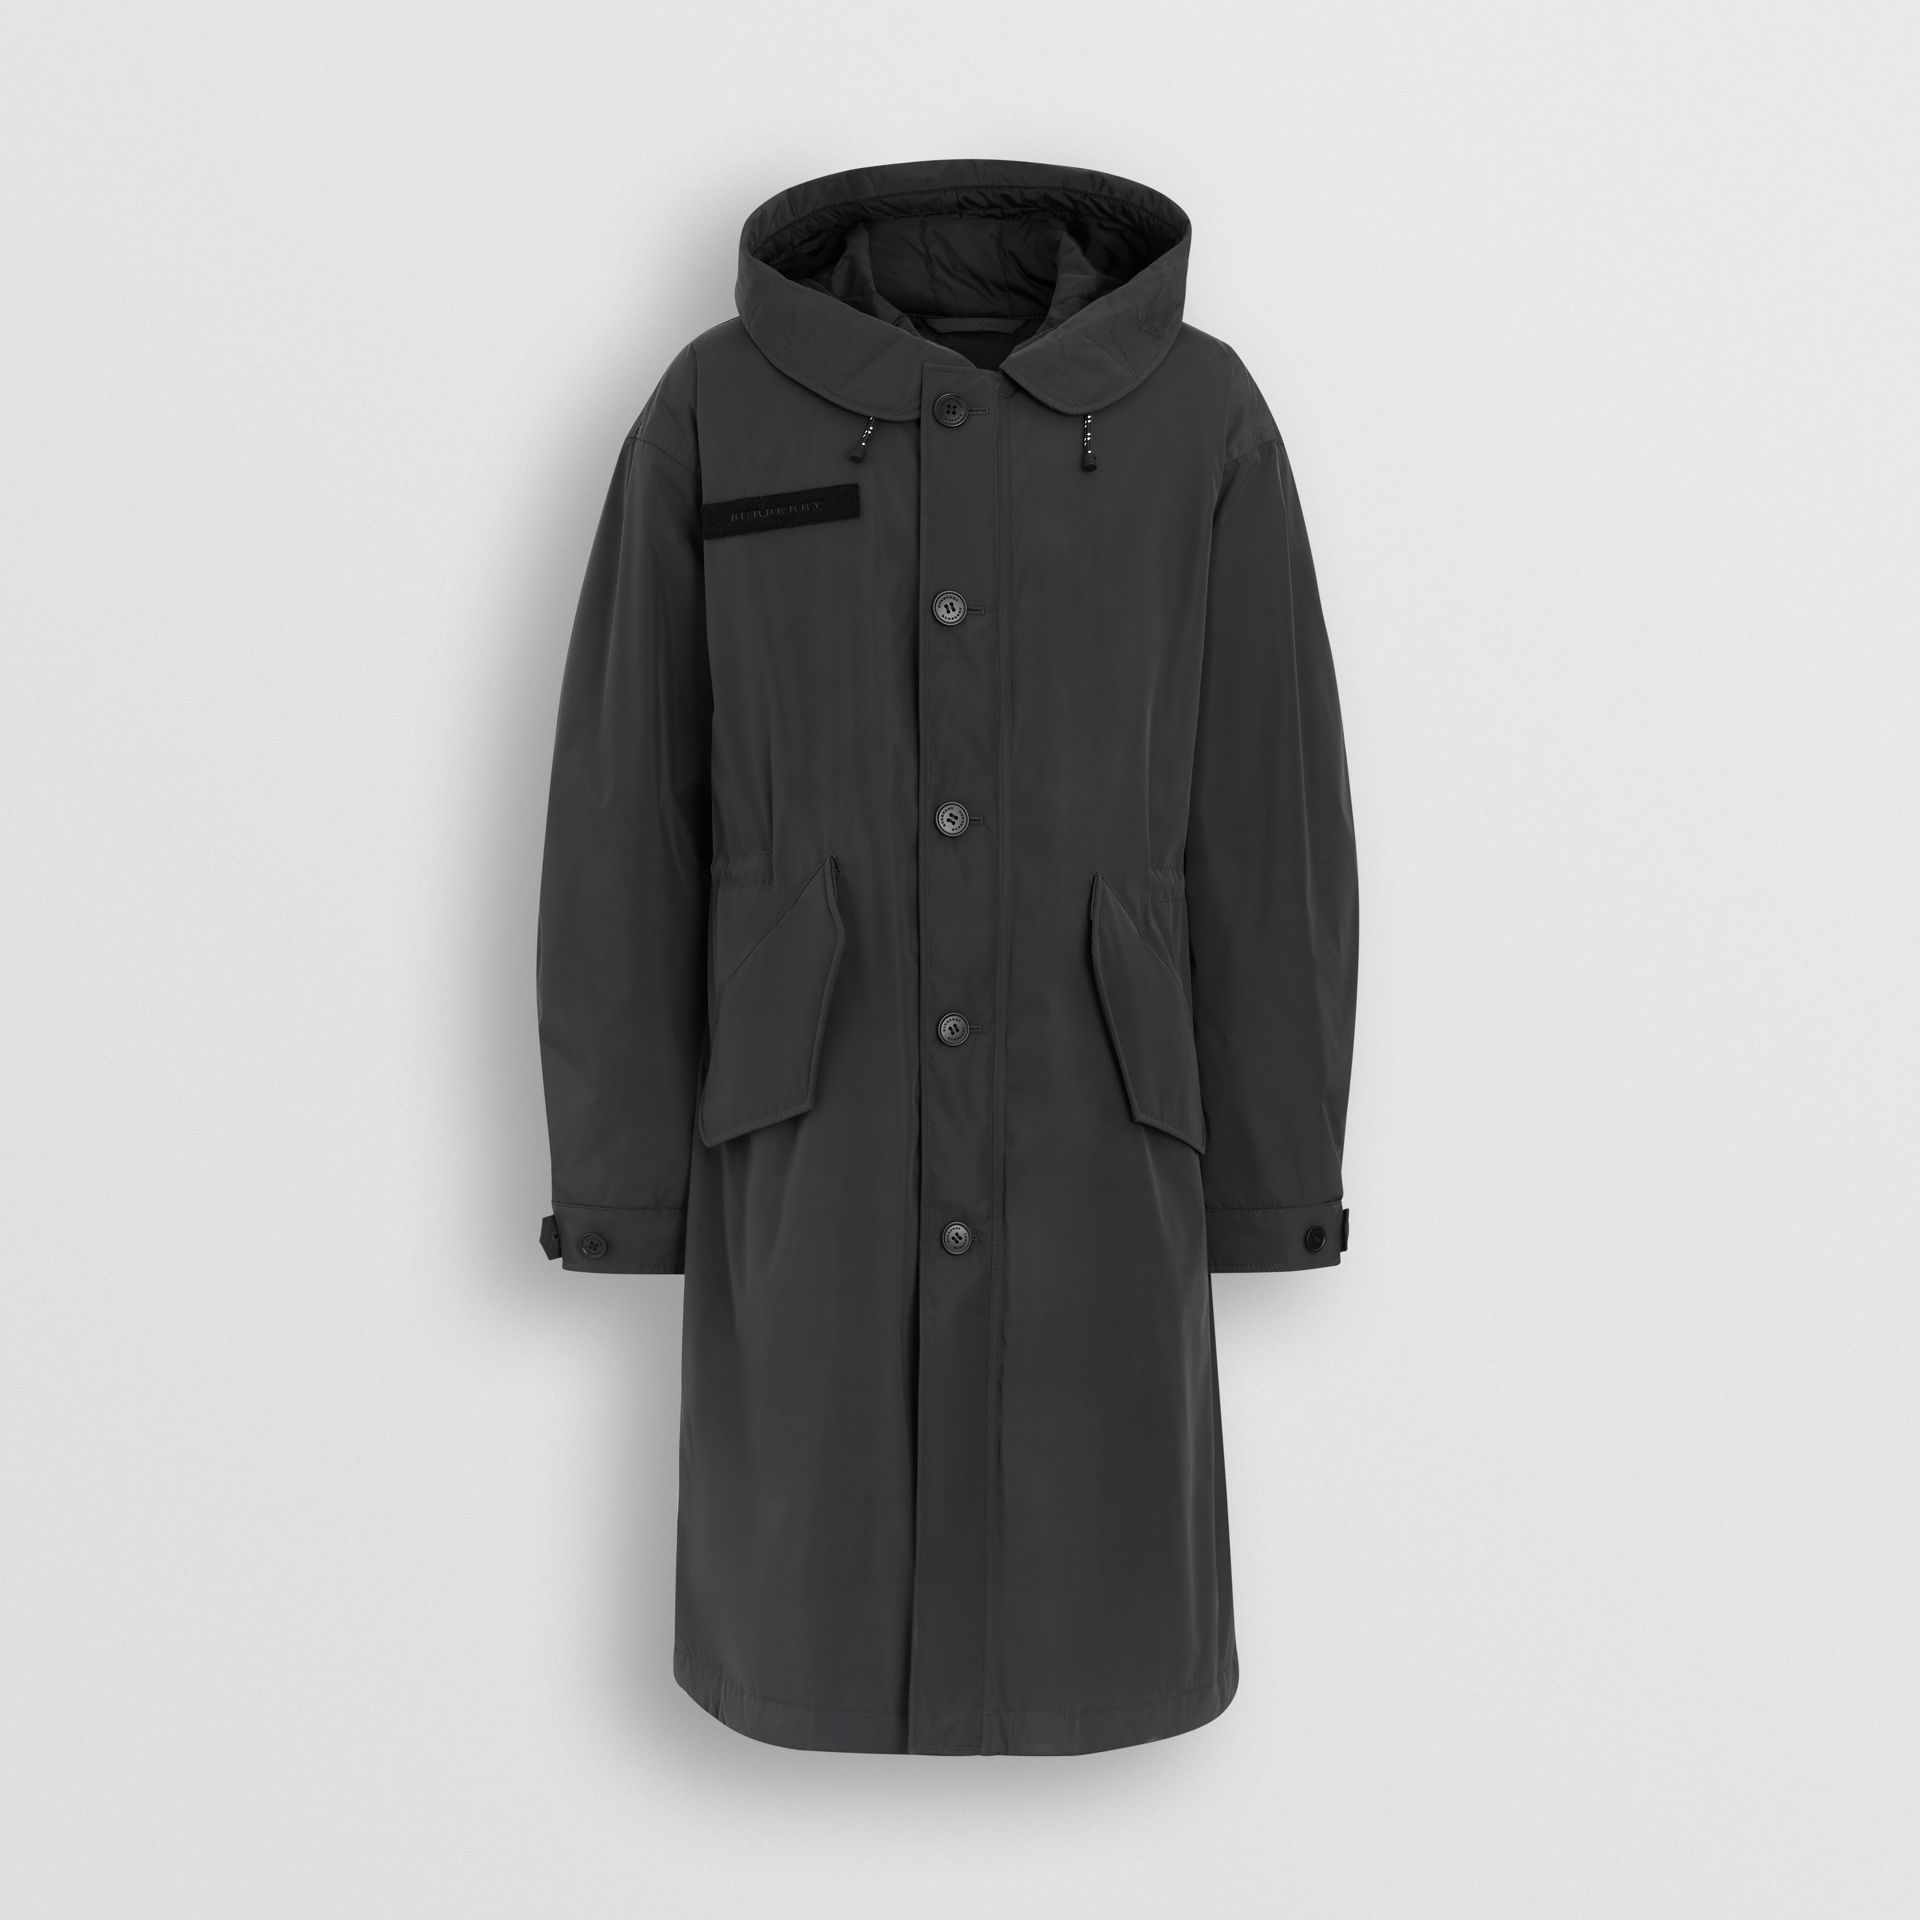 Quilt-lined Technical Nylon Parka in Dark Charcoal - Men | Burberry Canada - gallery image 3